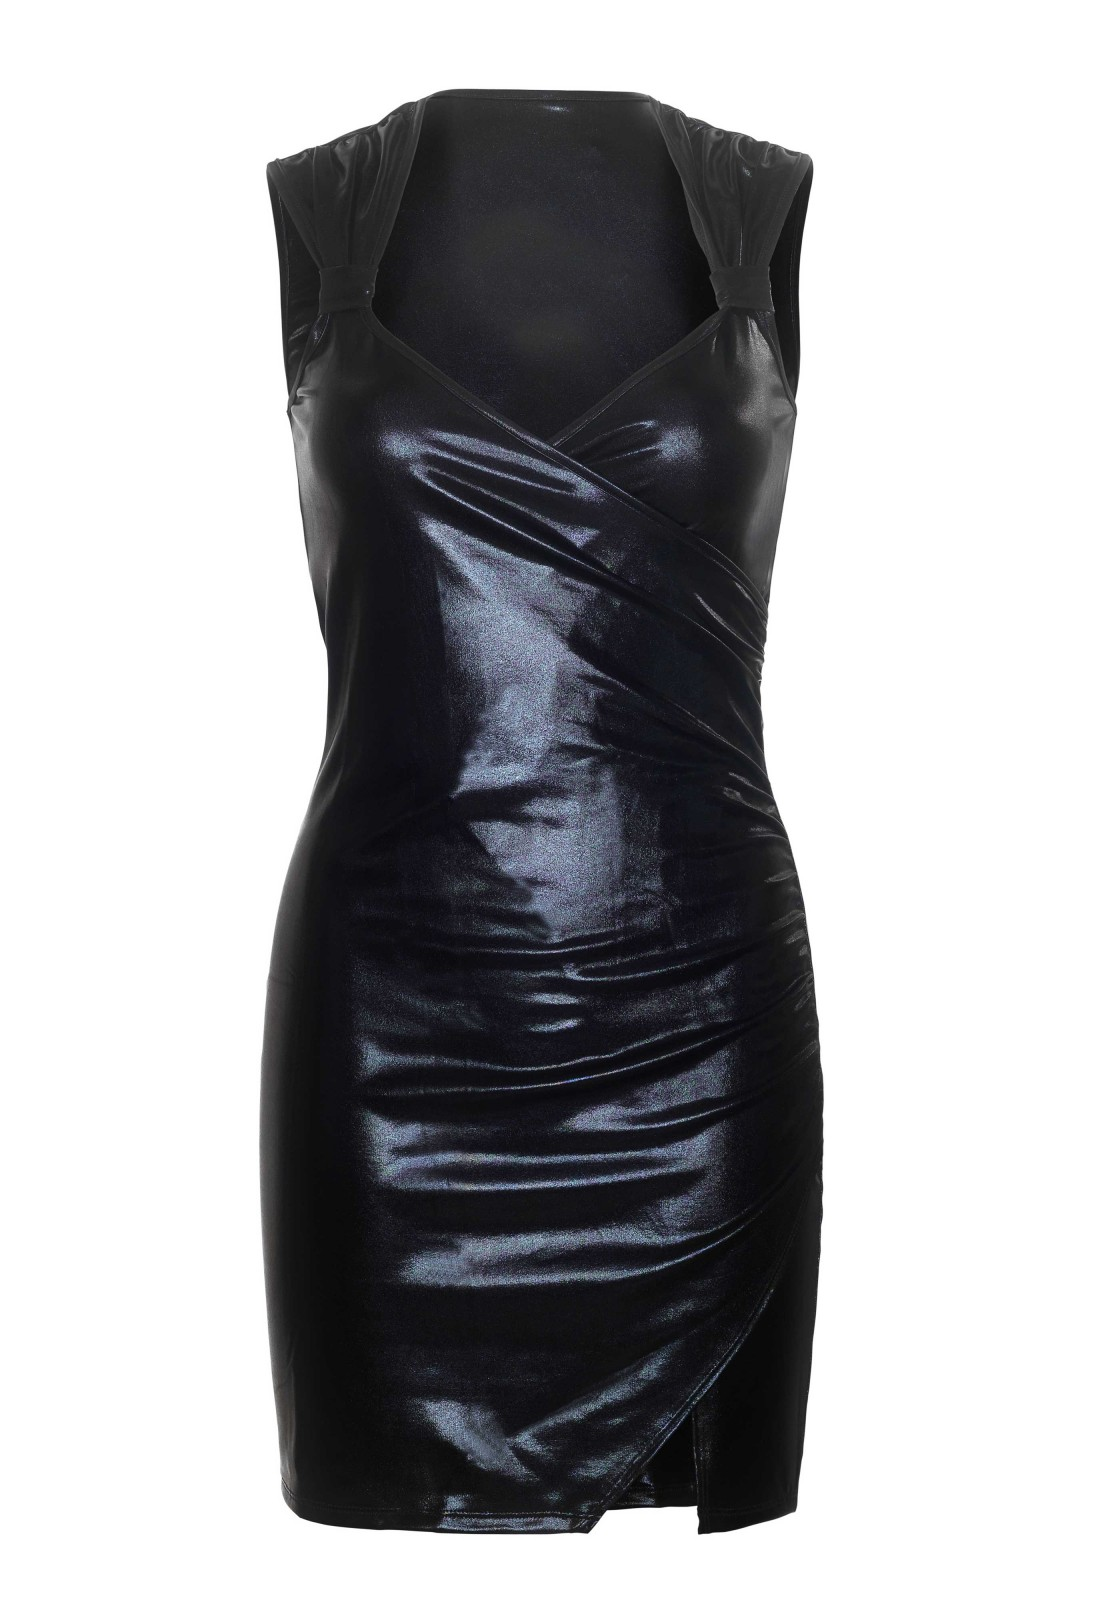 Dress Emma is a lamé wetlook bodycon dress with a ruched wrap, decorative knots on the straps and a sexy split on the leg.  The length measured from the shoulder is 80 cm/ 31.5 inch. The model has a length of 182 cm/ 70 inch and is wearing a size S.